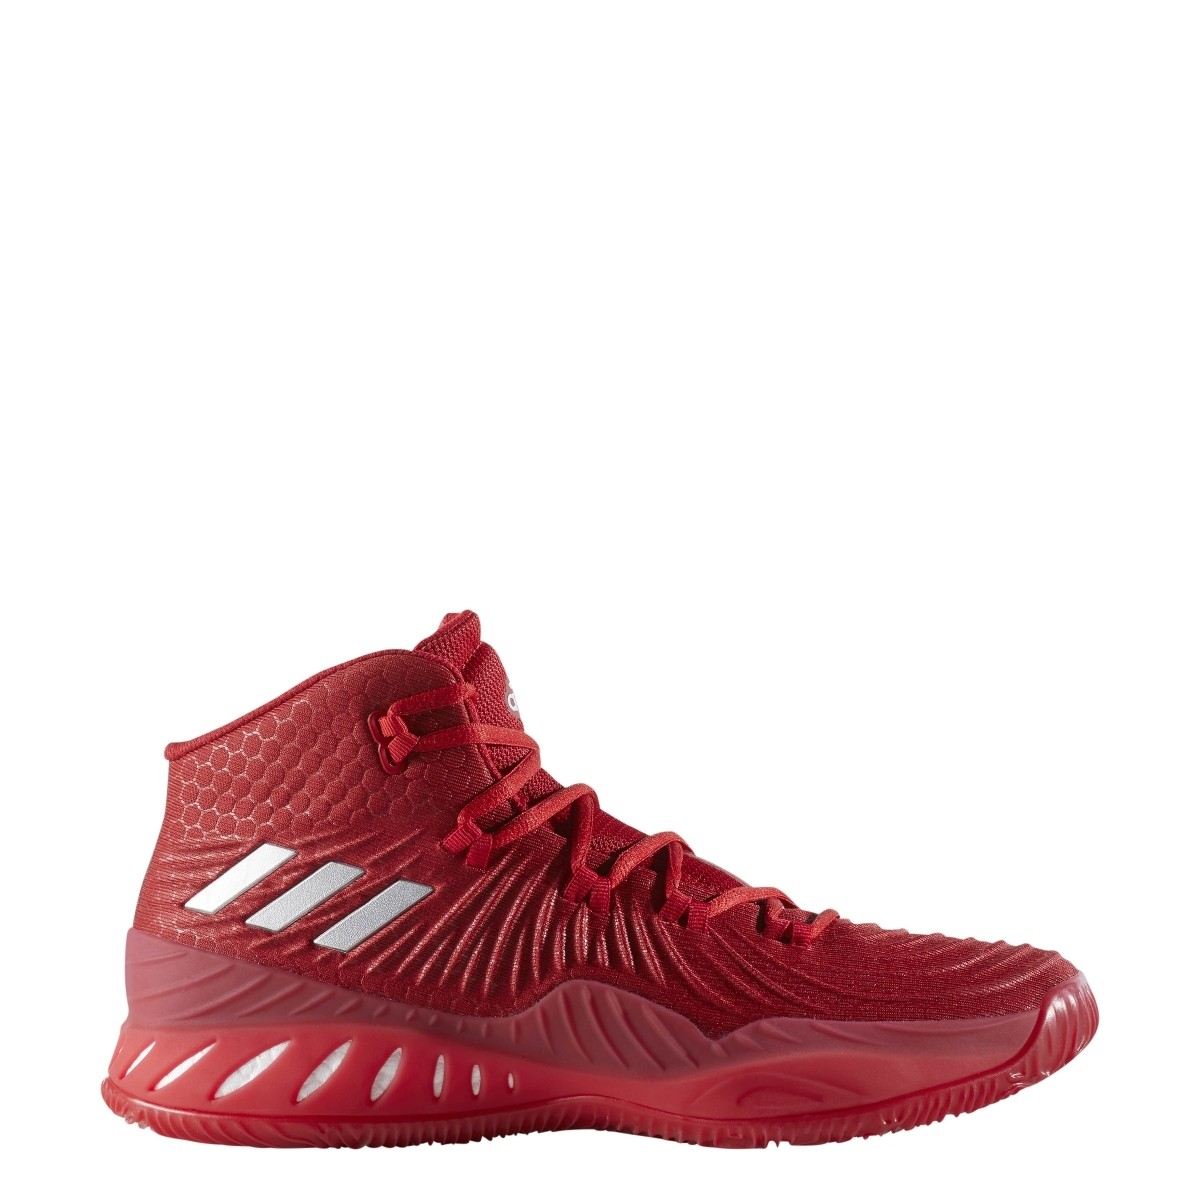 97e97c0aca3c Details about New Adidas Crazy Explosive 2017 Mens 4.5 Basketball Shoes  Red White